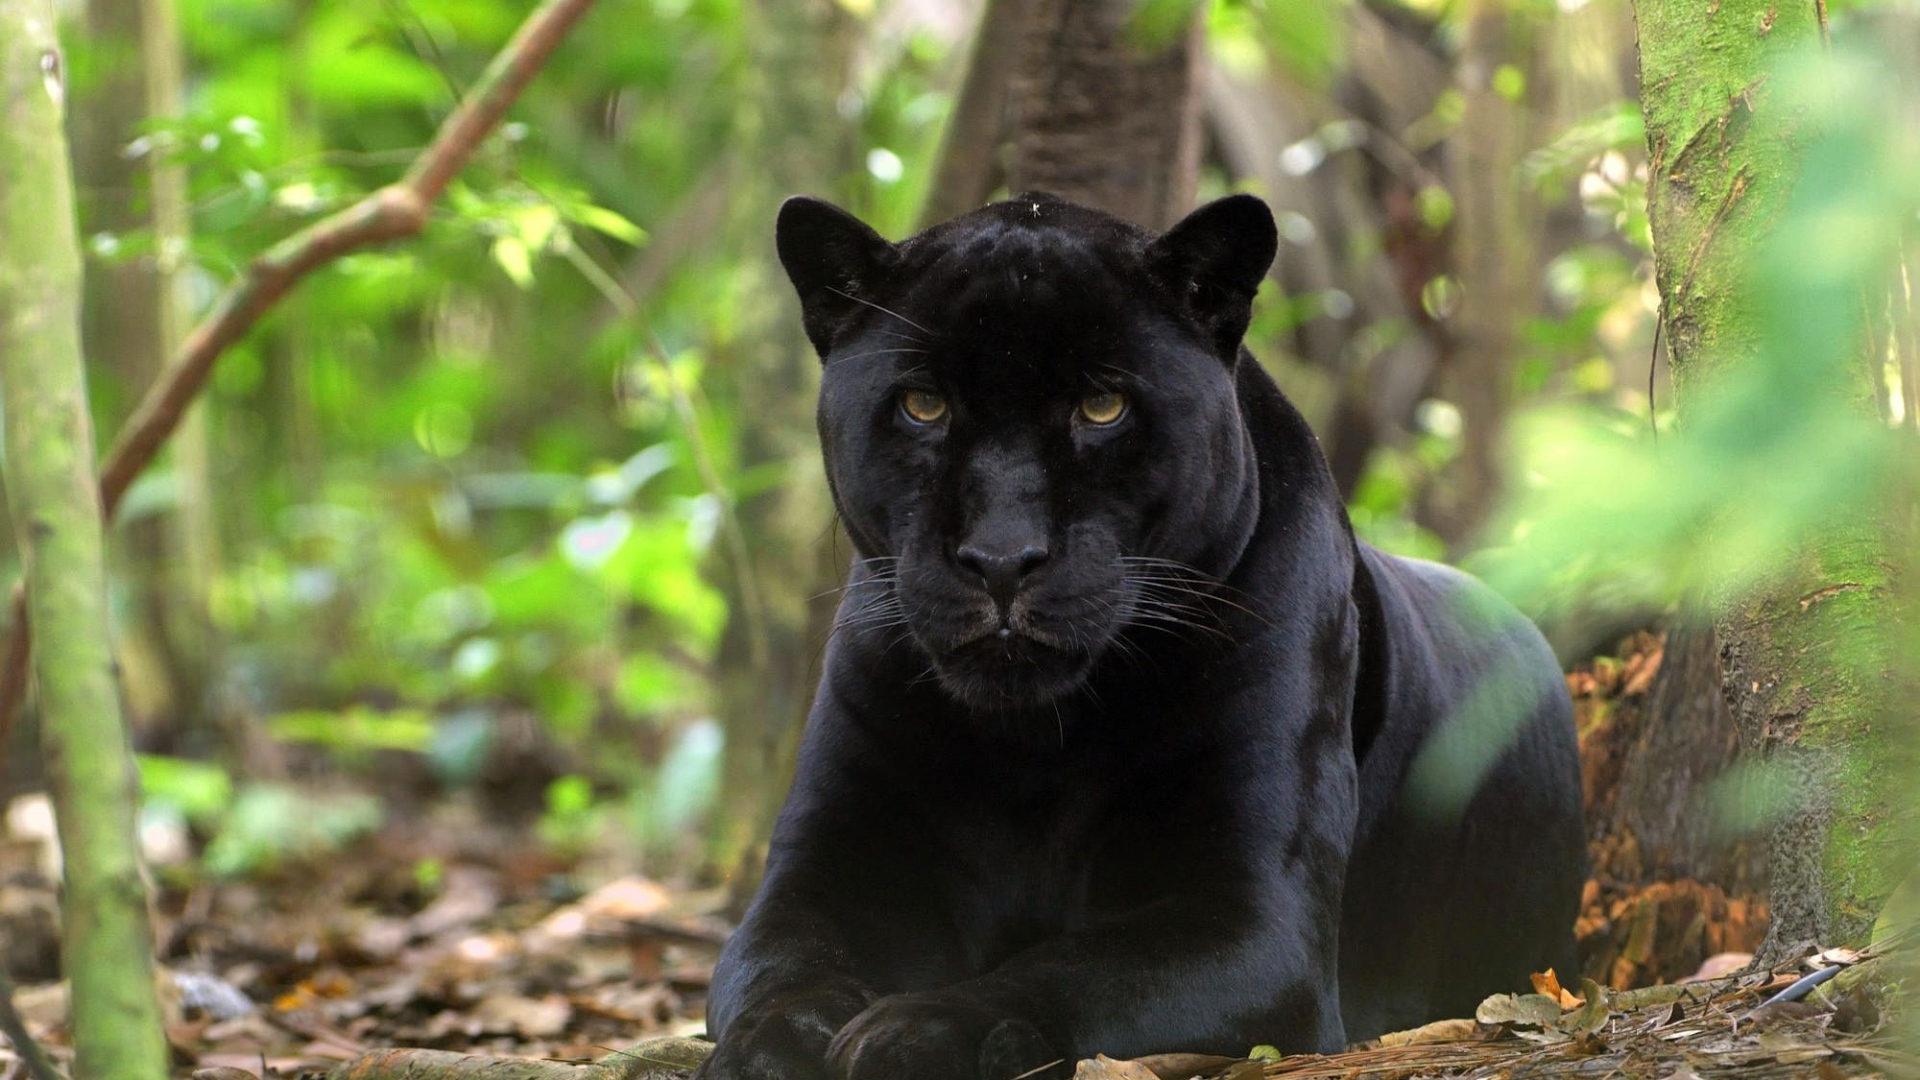 Black Panther Animal Wallpaper Download Belgium Hotels 5 Star